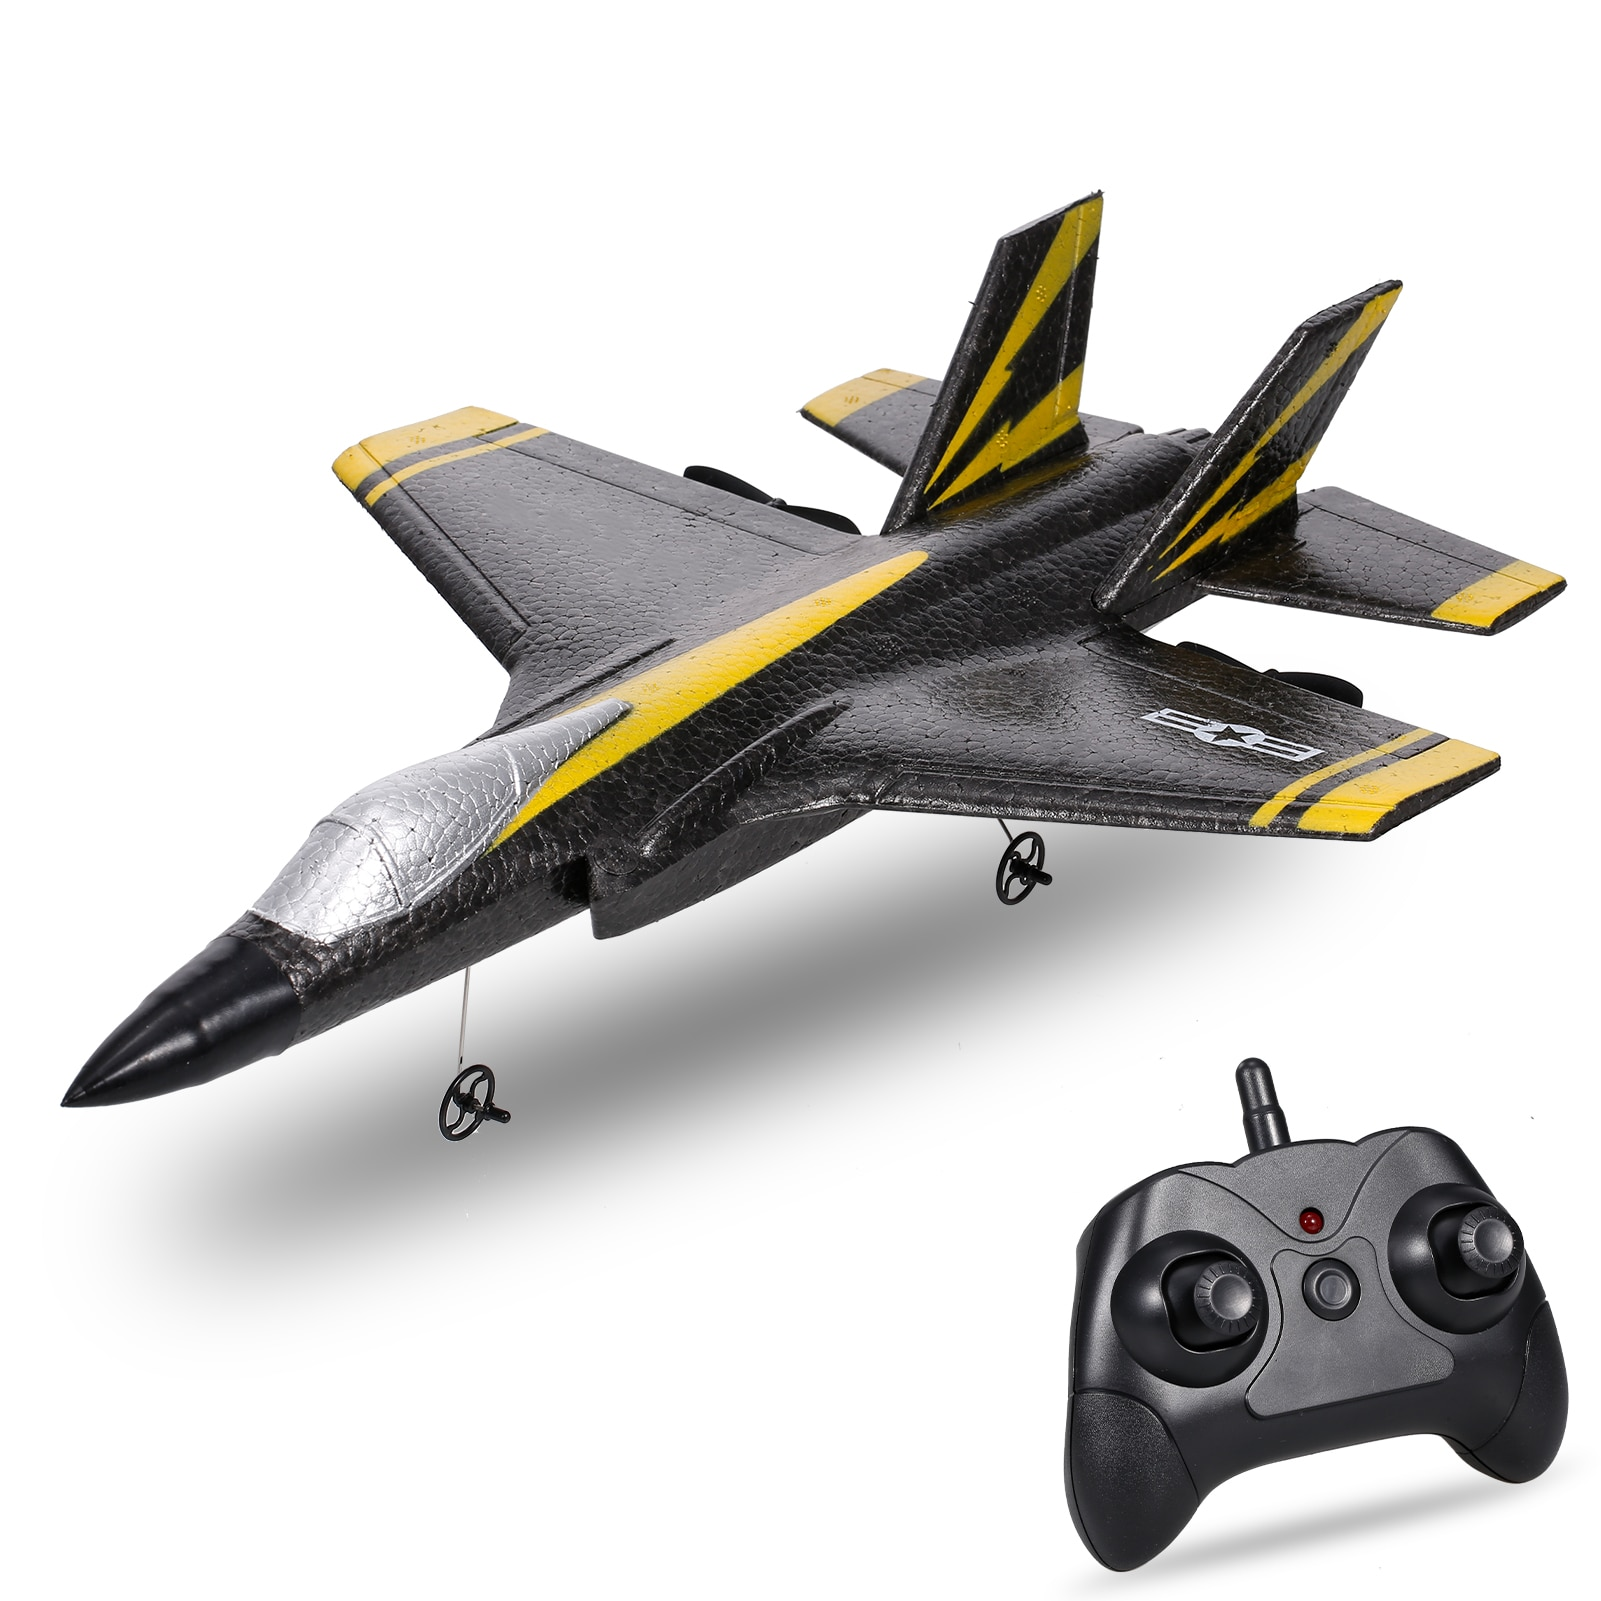 2.4Ghz RC Plane RC Aircraft RC Airplane Remote Control Foam Glider RC Glider Plane Fixed Wing Airpla